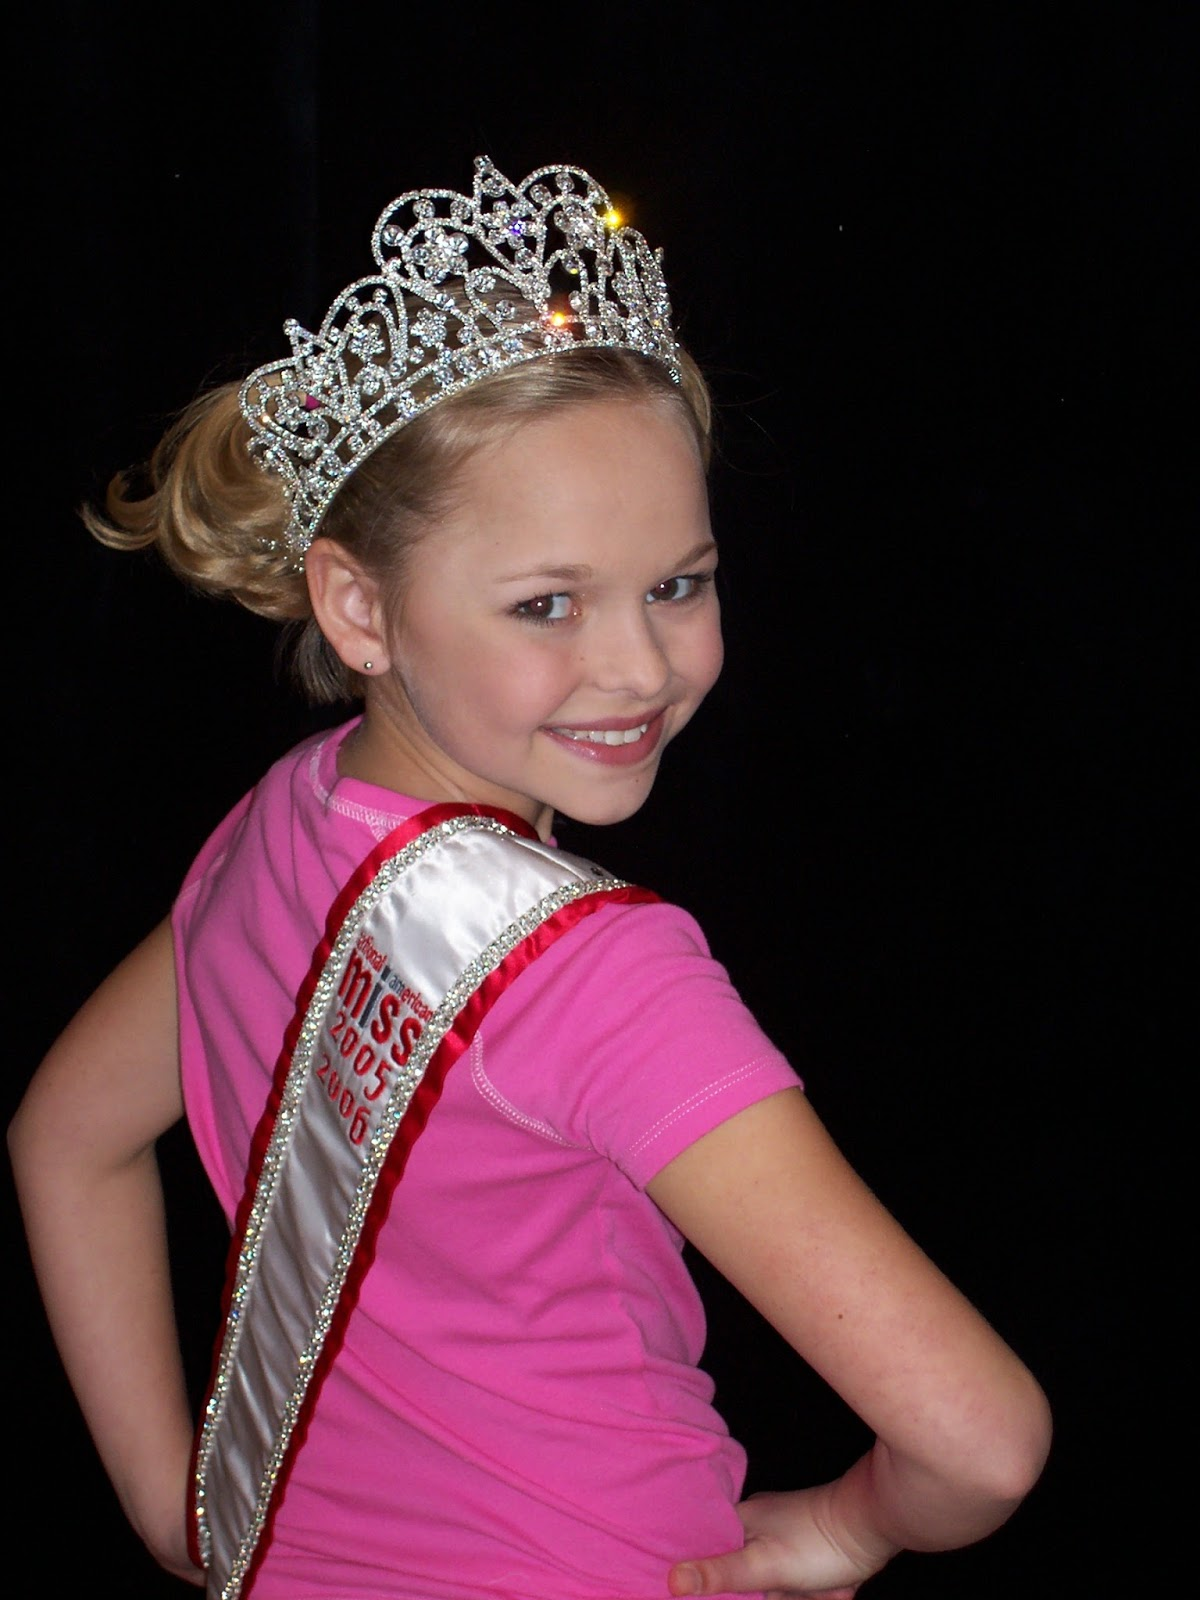 This Just In The Latest News On Miss Teen Pageants: